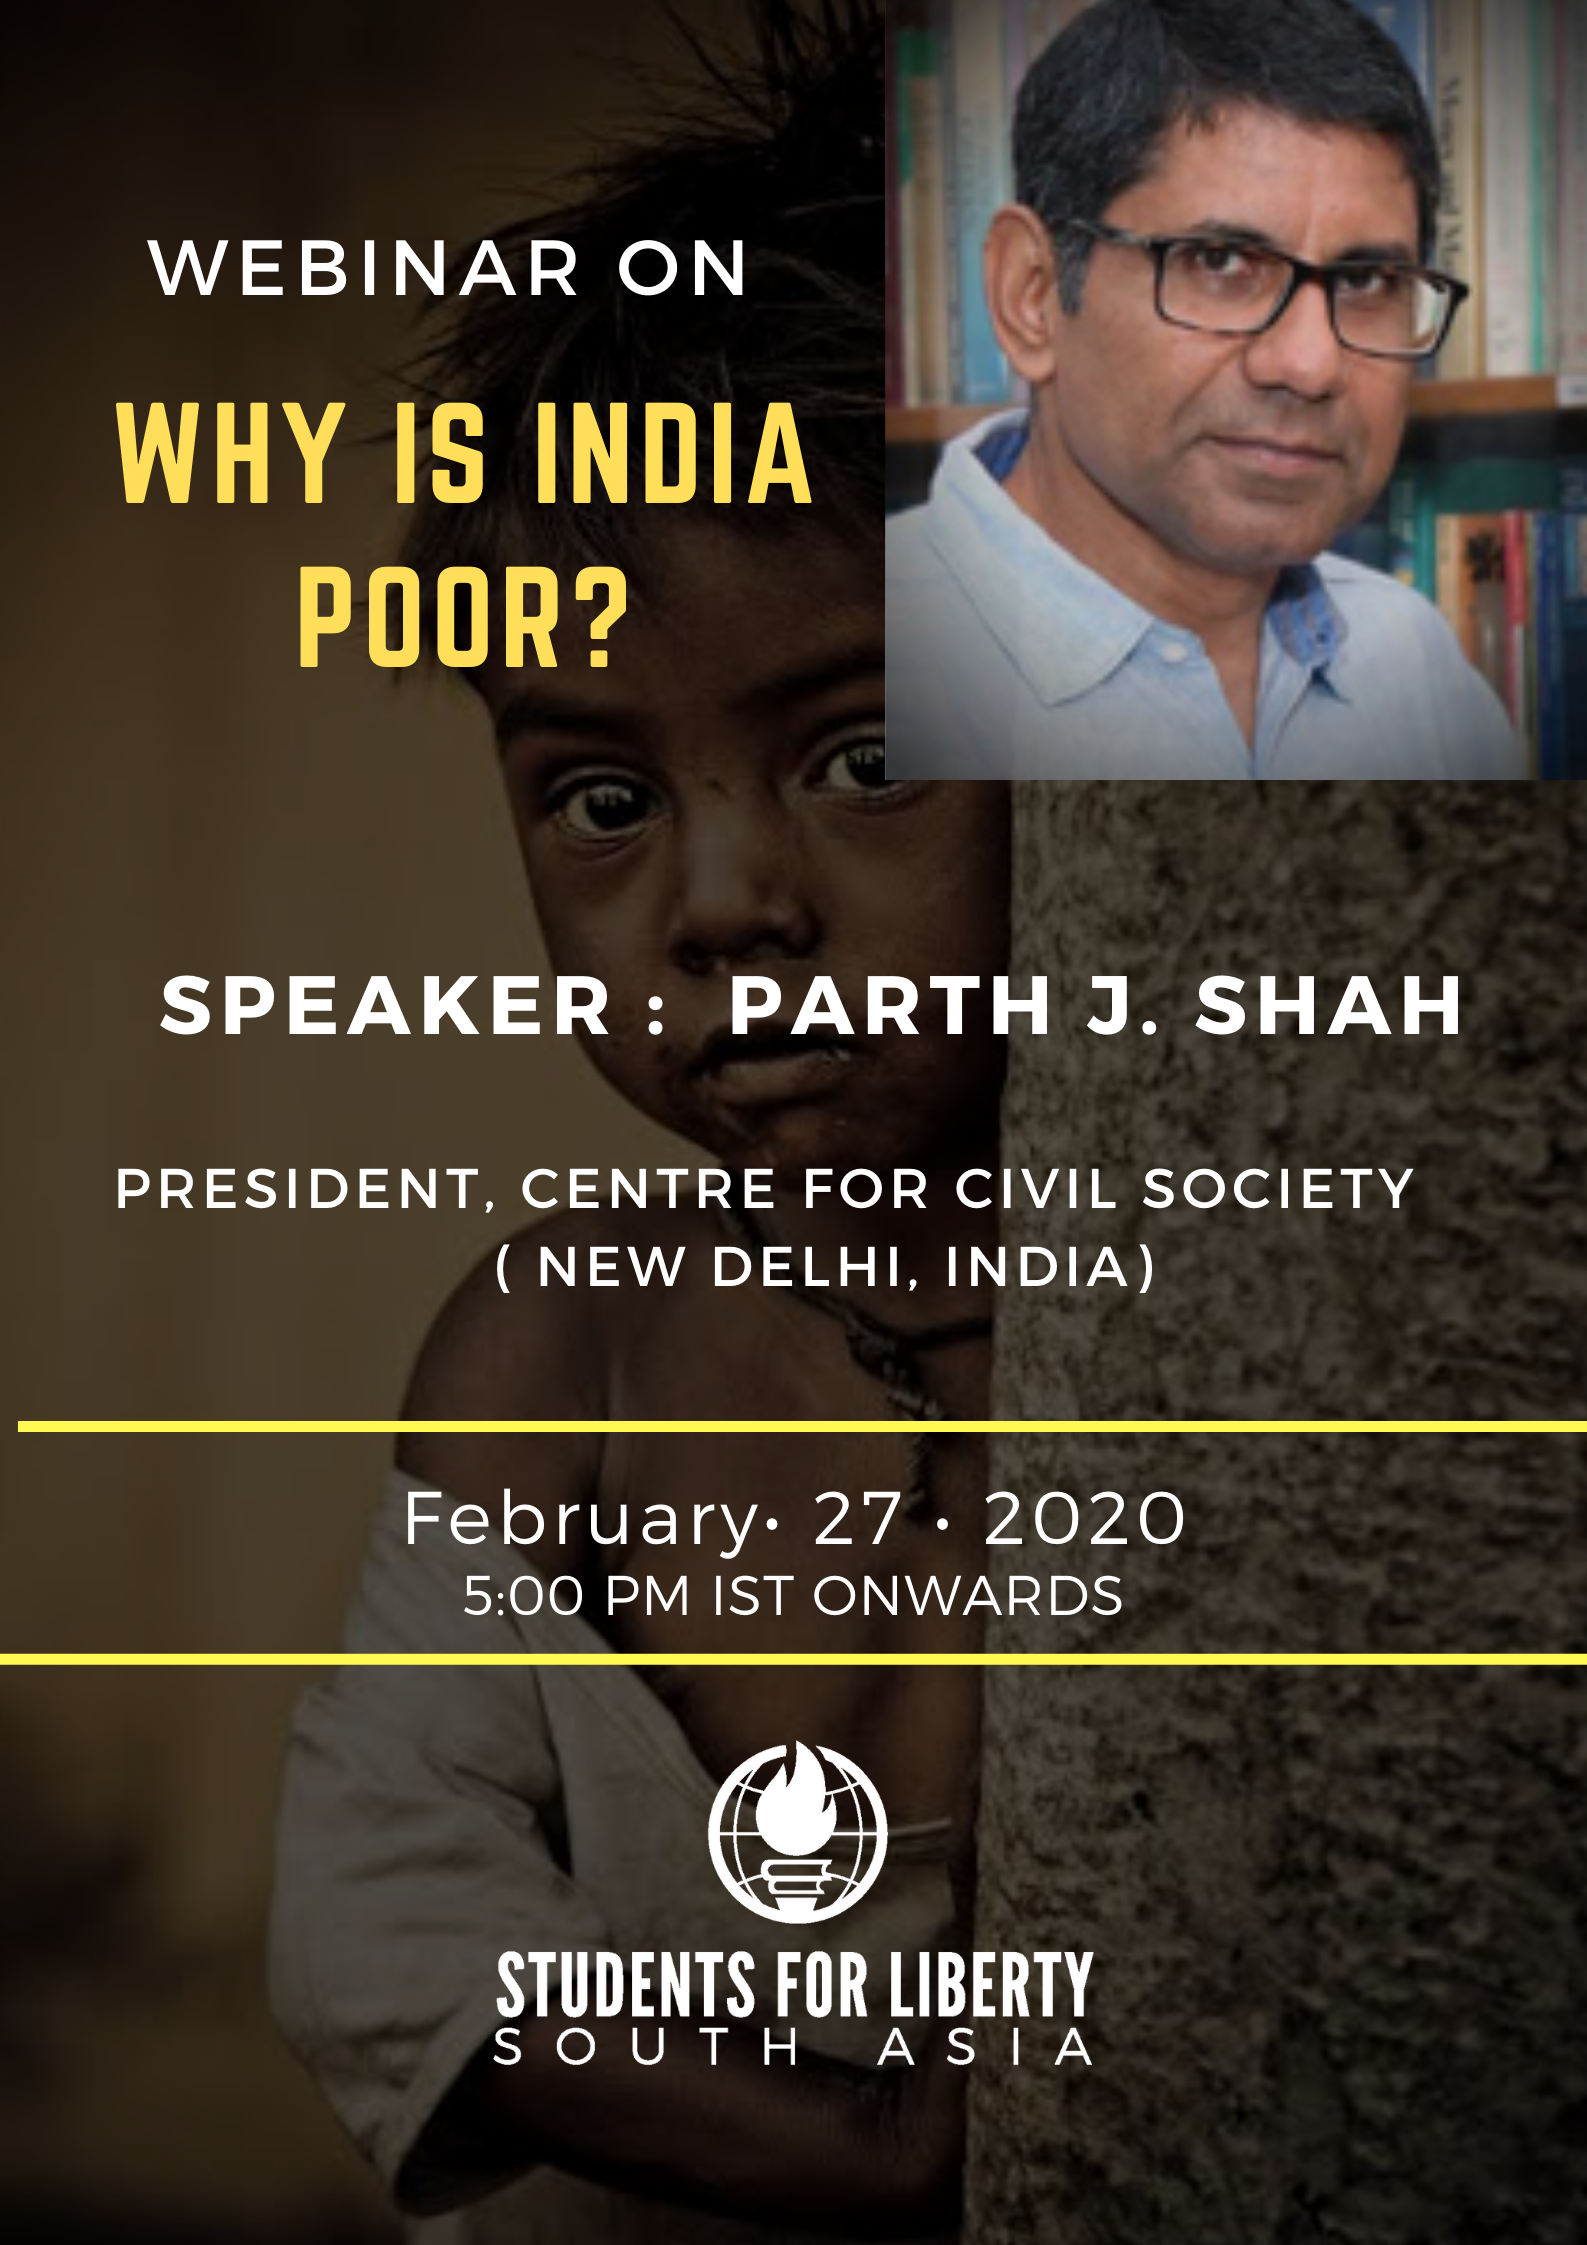 Webinar on Why is India Poor with Dr. Parth J. Shah by Students For Liberty